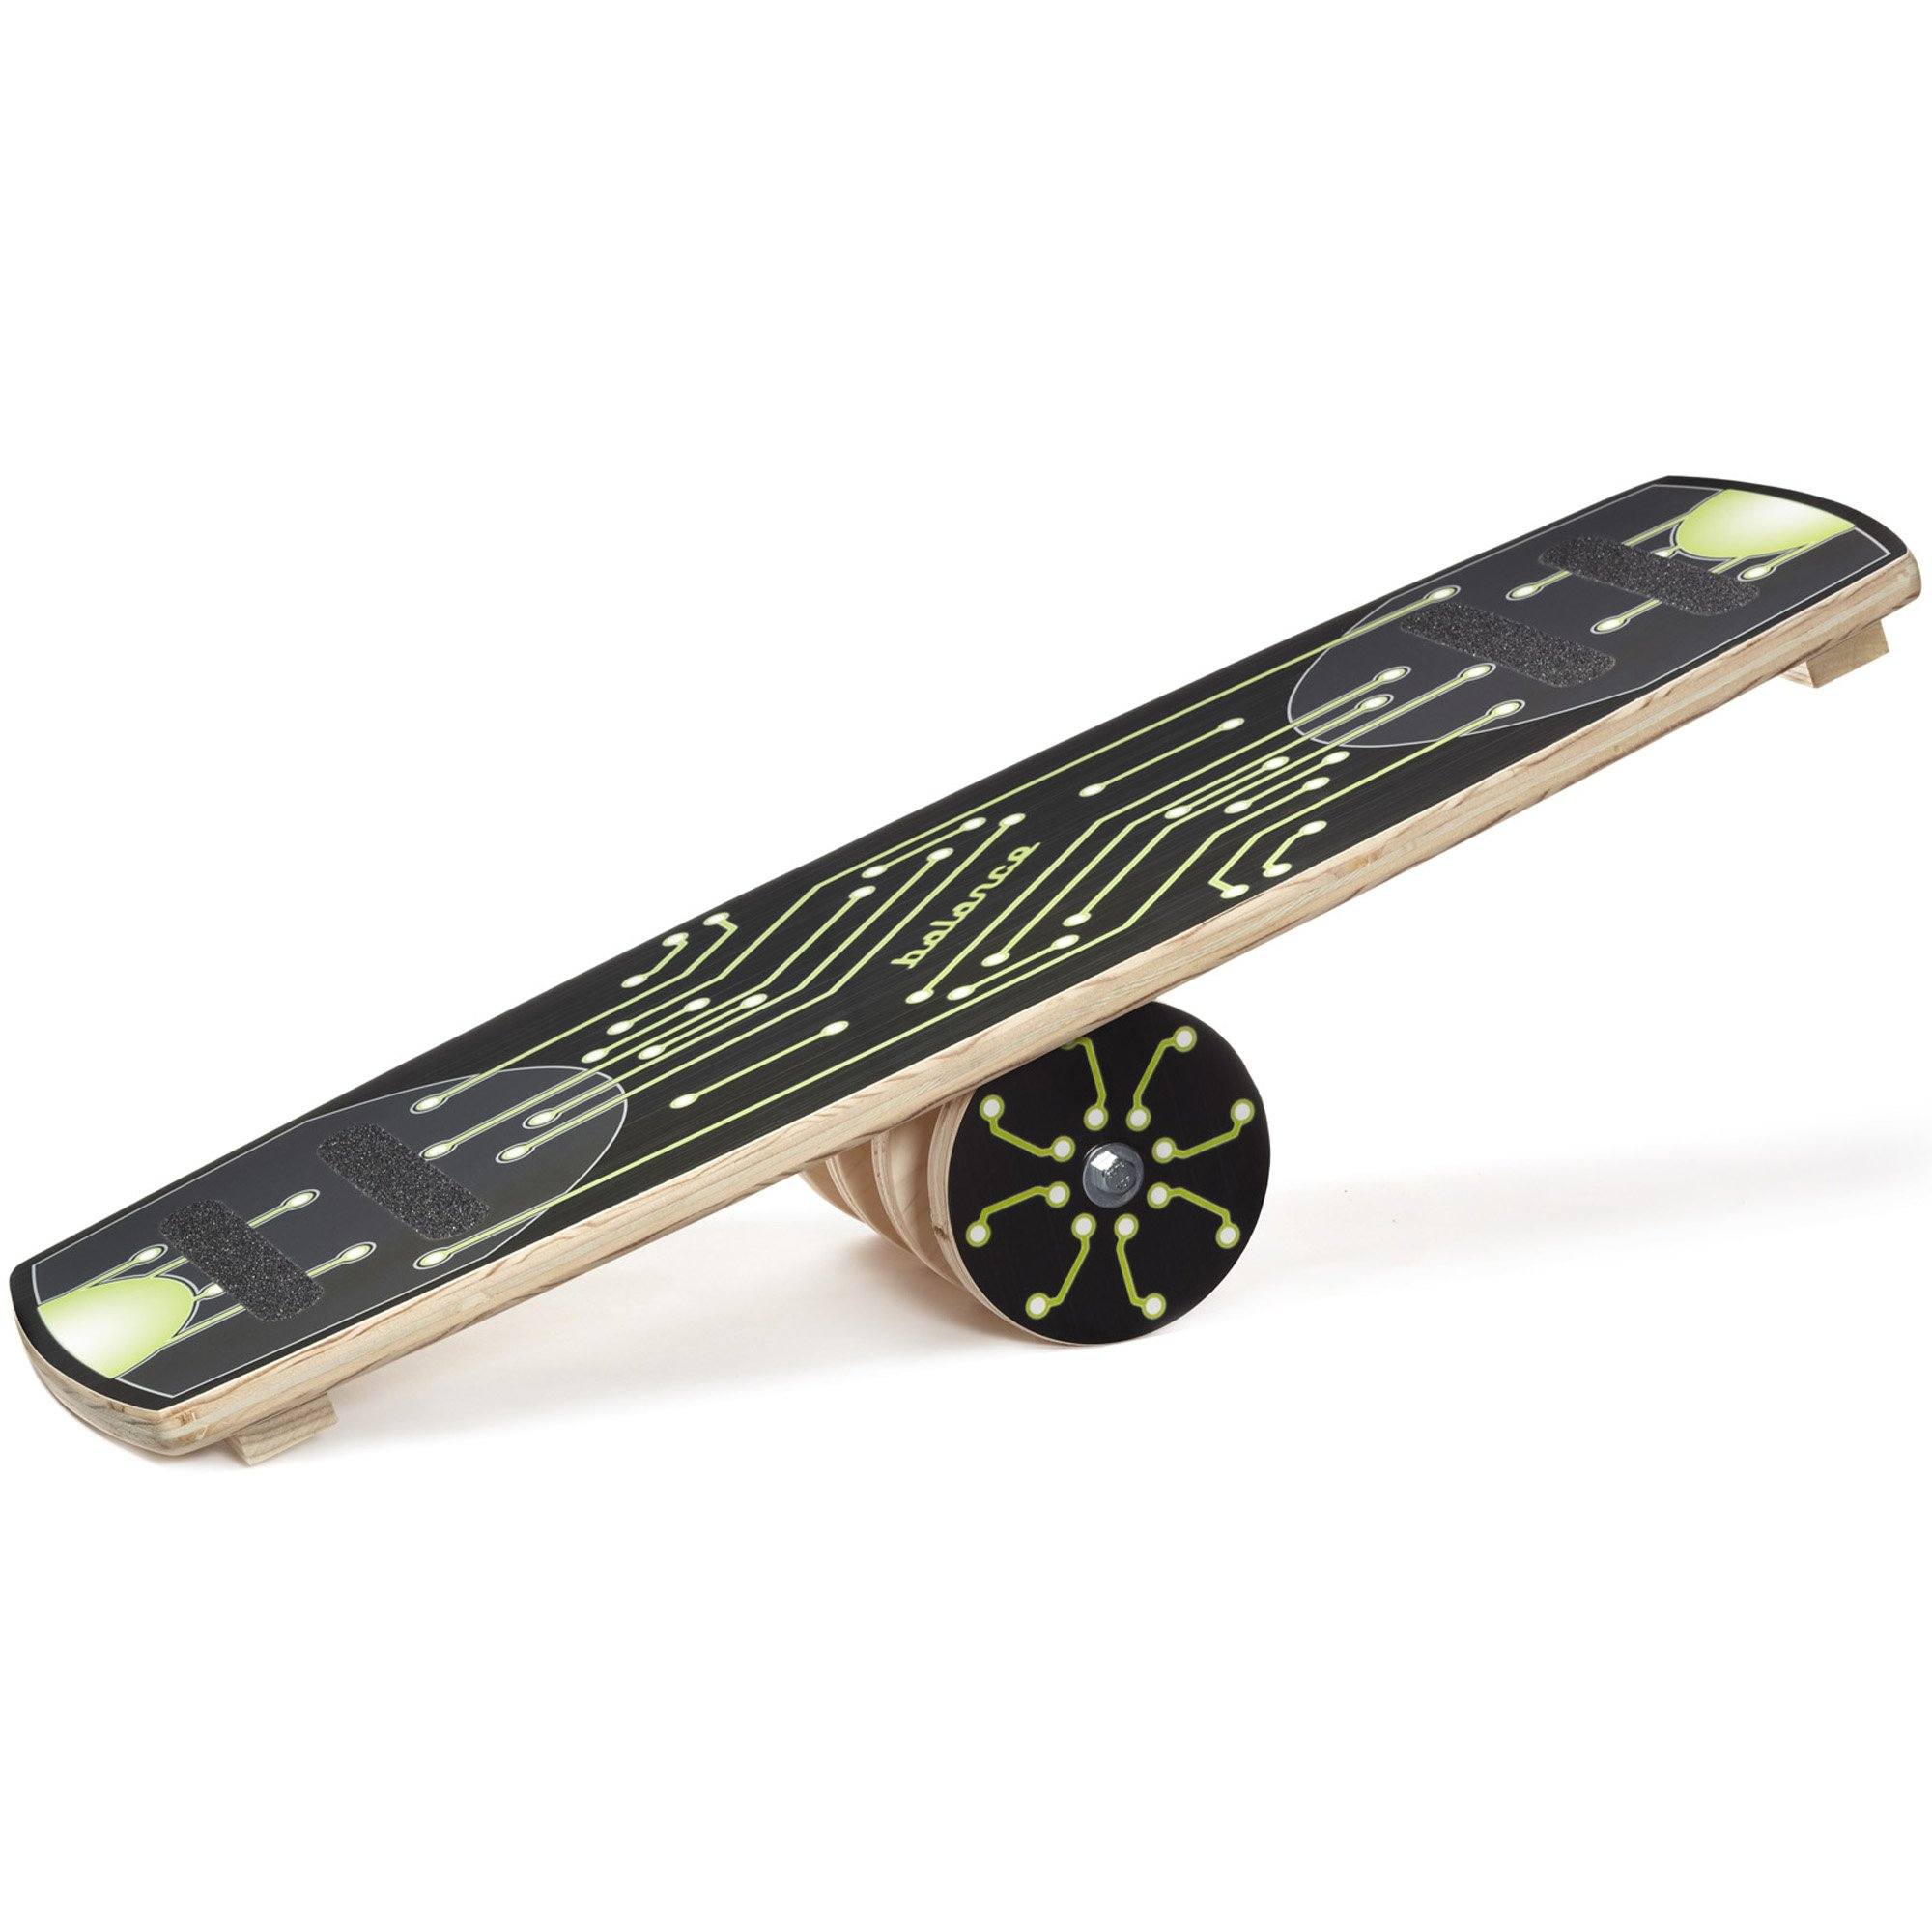 Carrom 510.71 Balance Board, Green